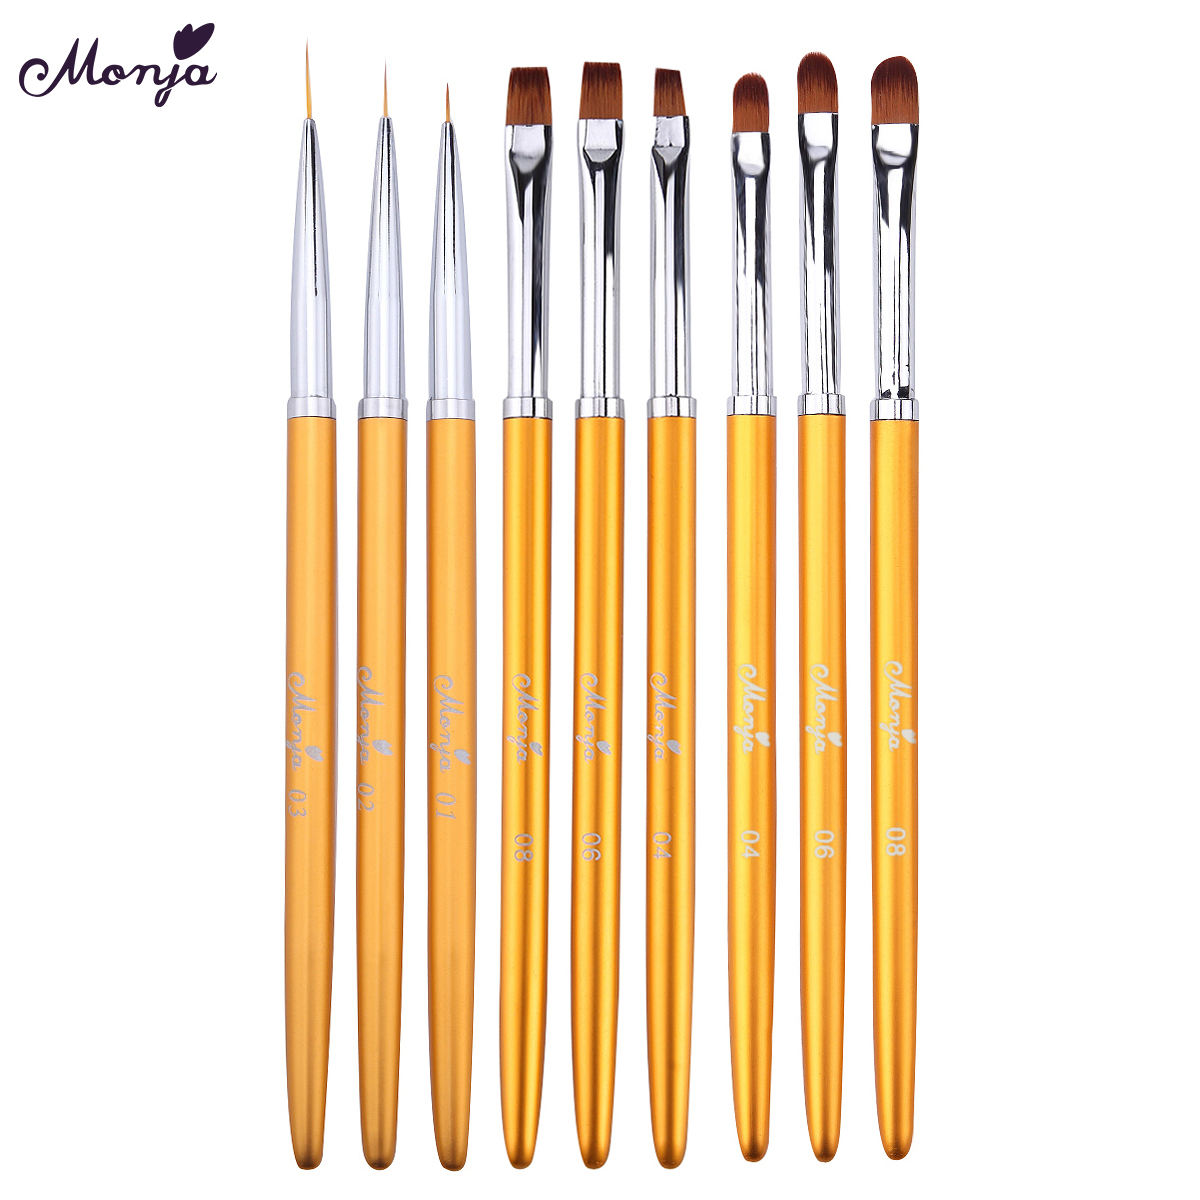 Monja 3Pcs/set Nail Art Gold Handle UV Gel Extension Builder Drawing Brush Flower Stripe Lines DIY Painting Pen Manicure Tool